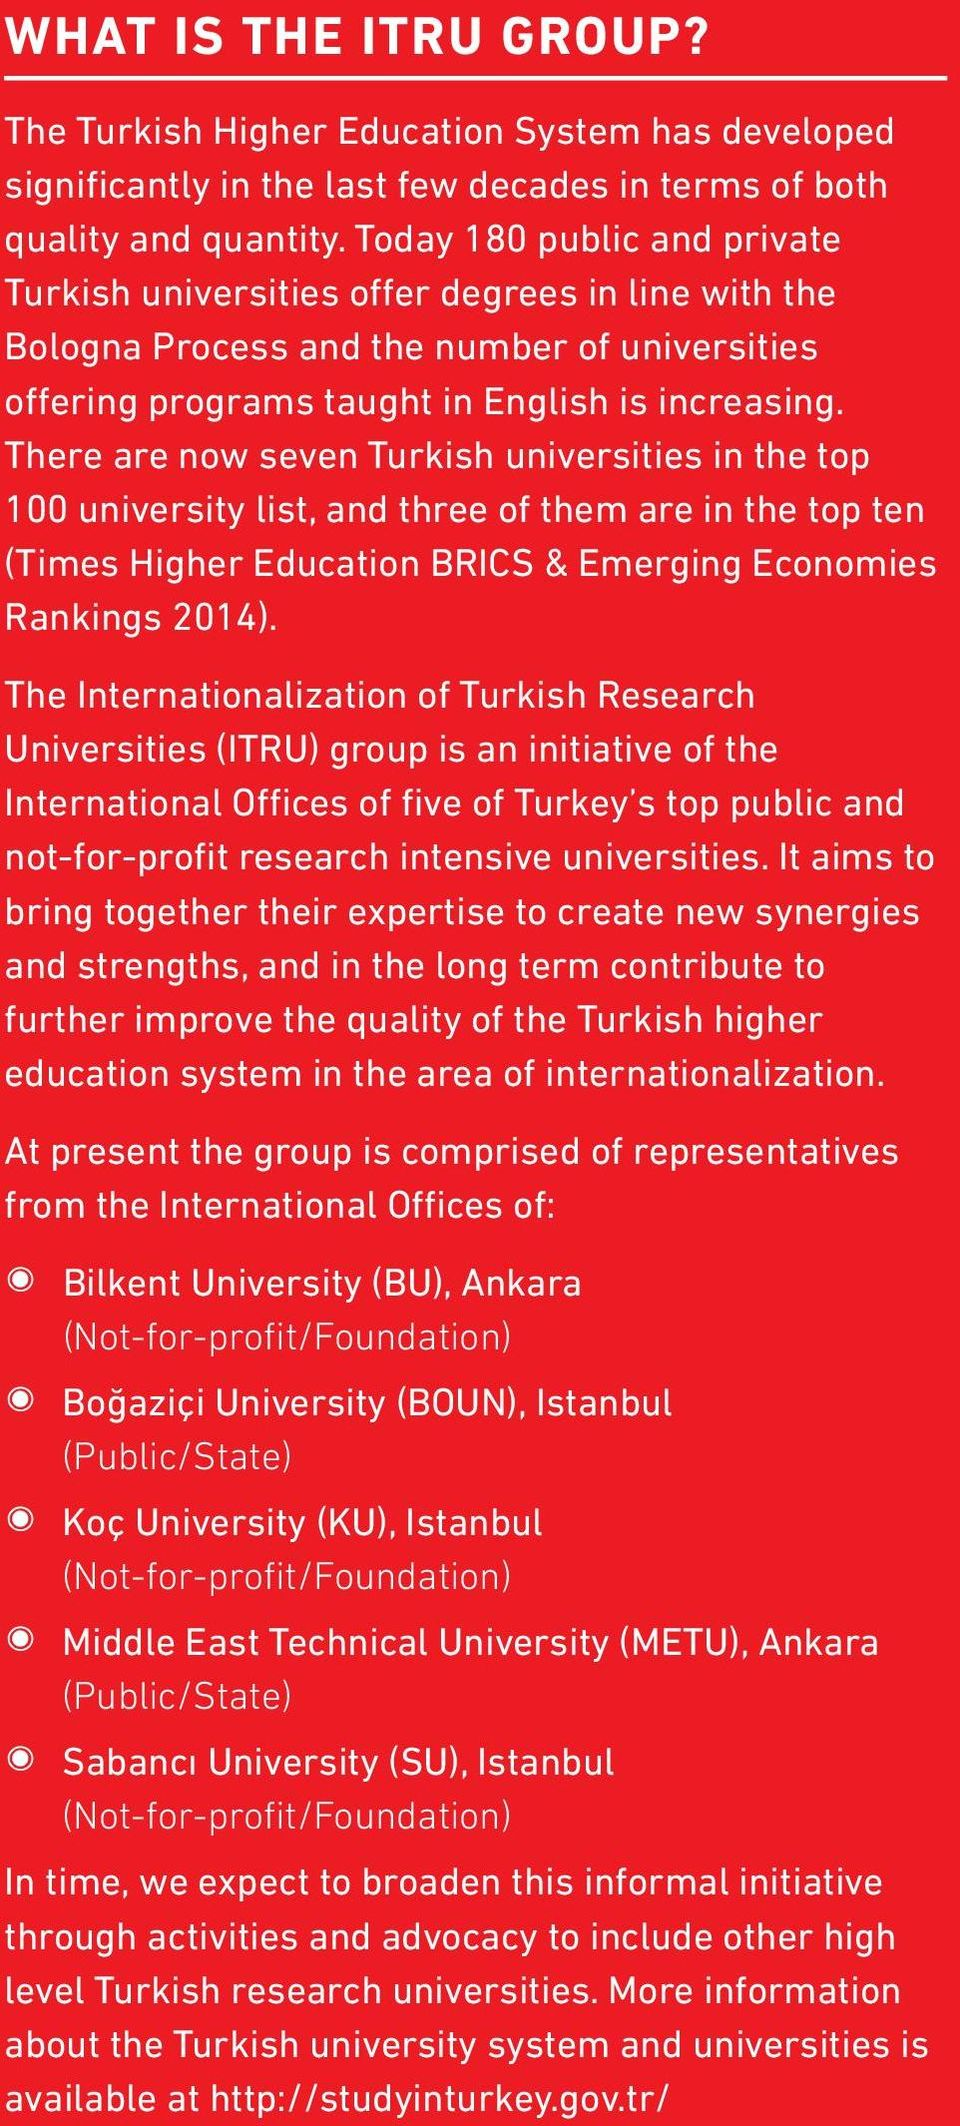 There are now seven Turkish universities in the top 100 university list, and three of them are in the top ten (Times Higher Education BRICS & Emerging Economies Rankings 2014).